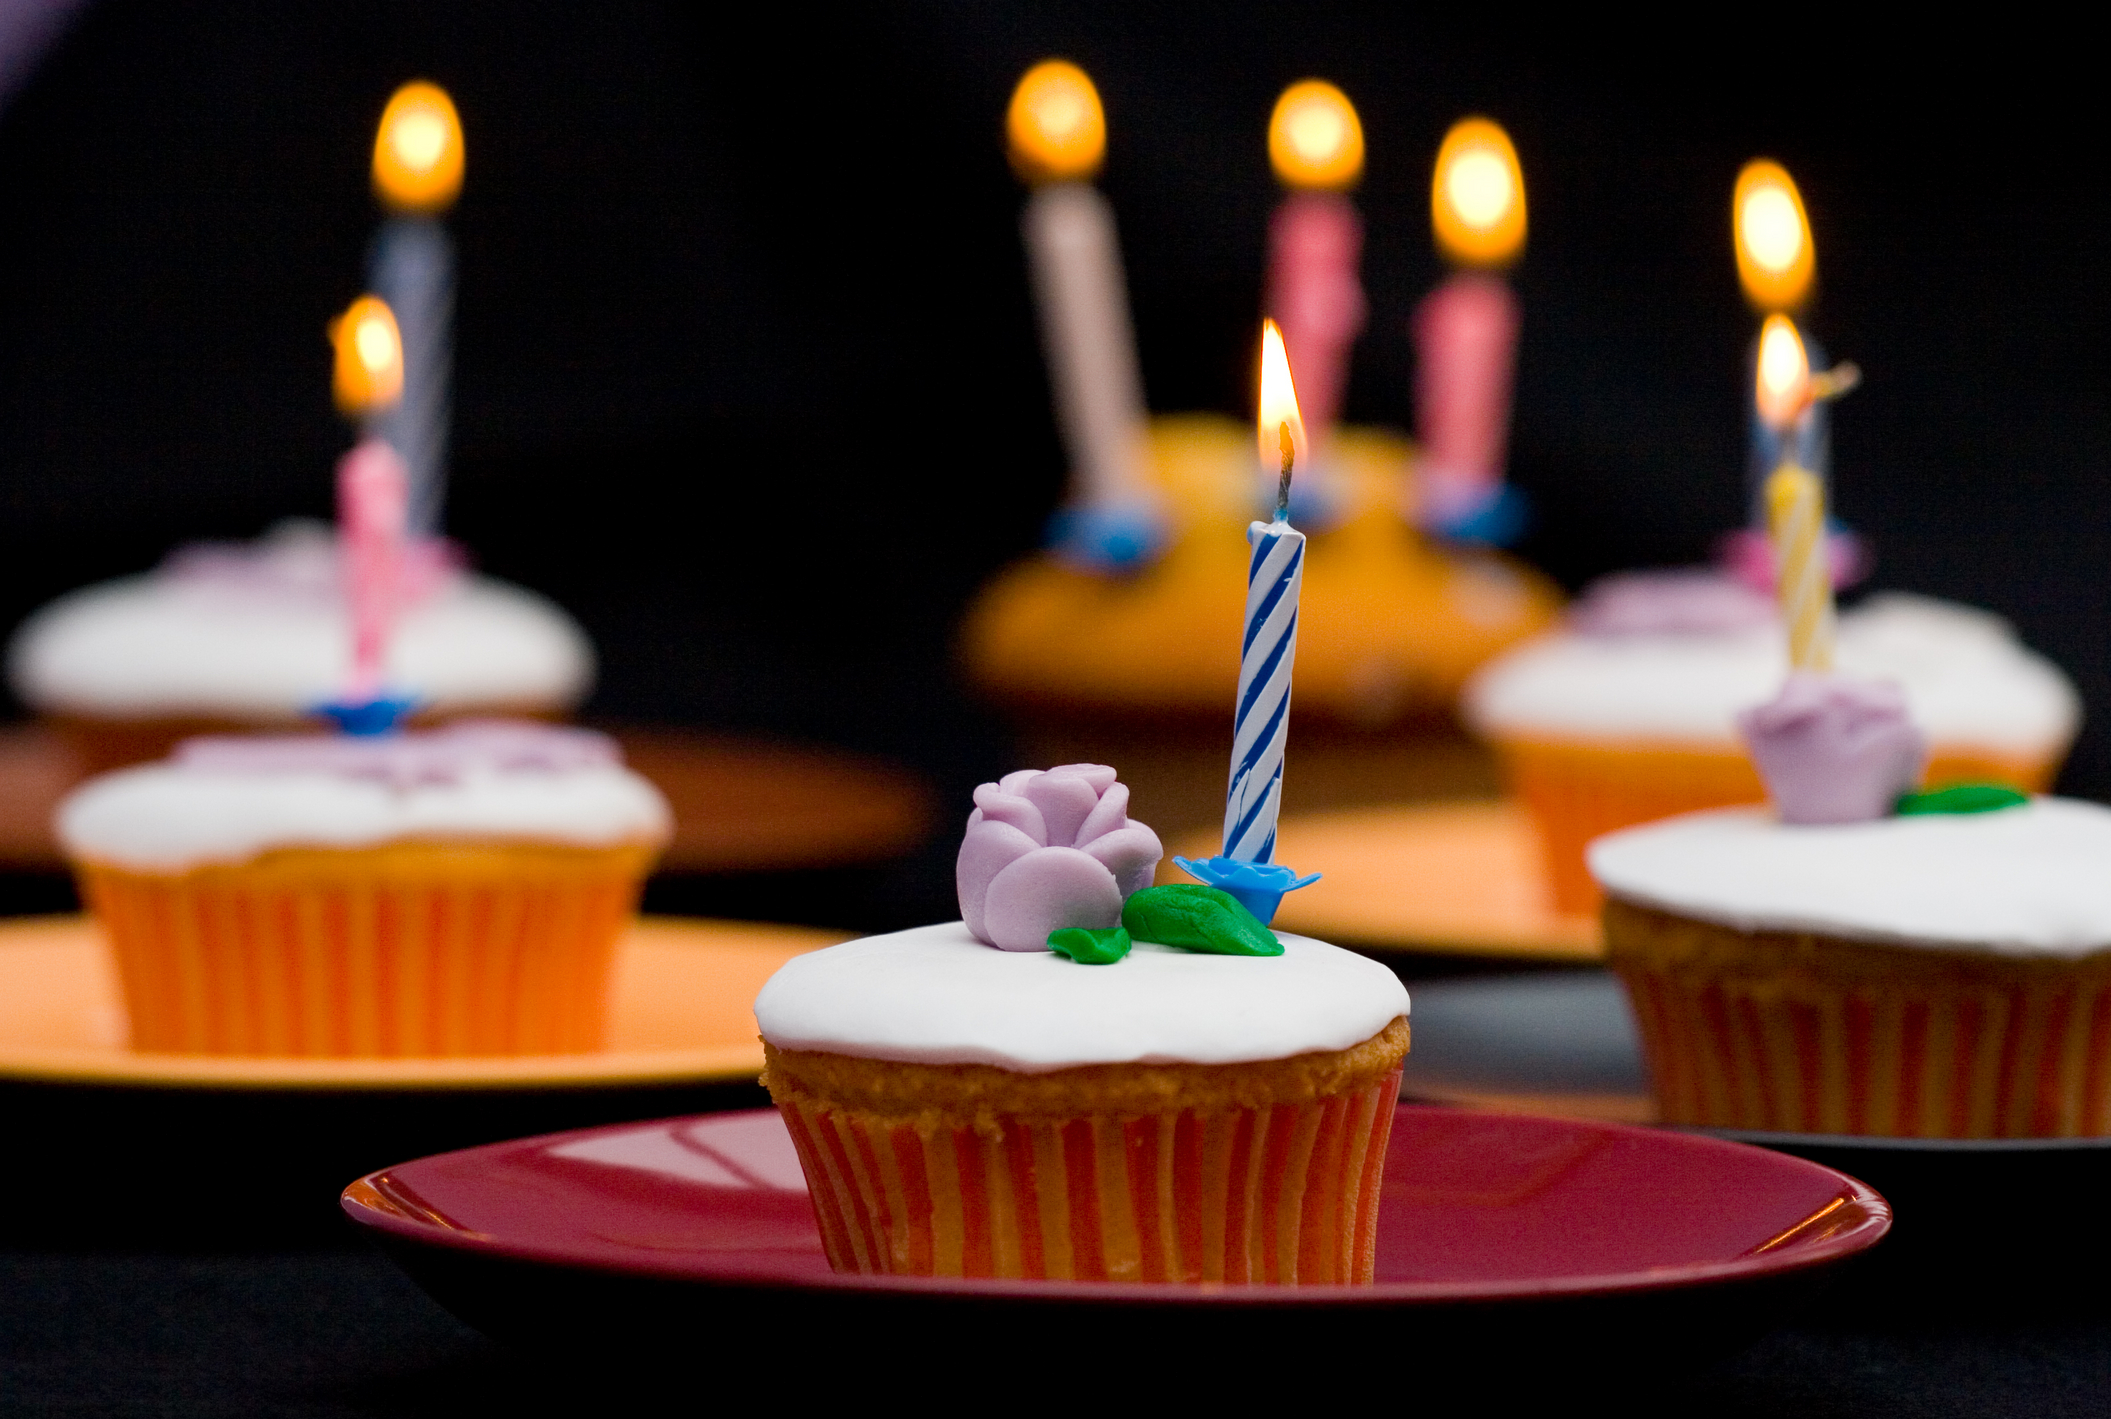 cupcakes with candles in